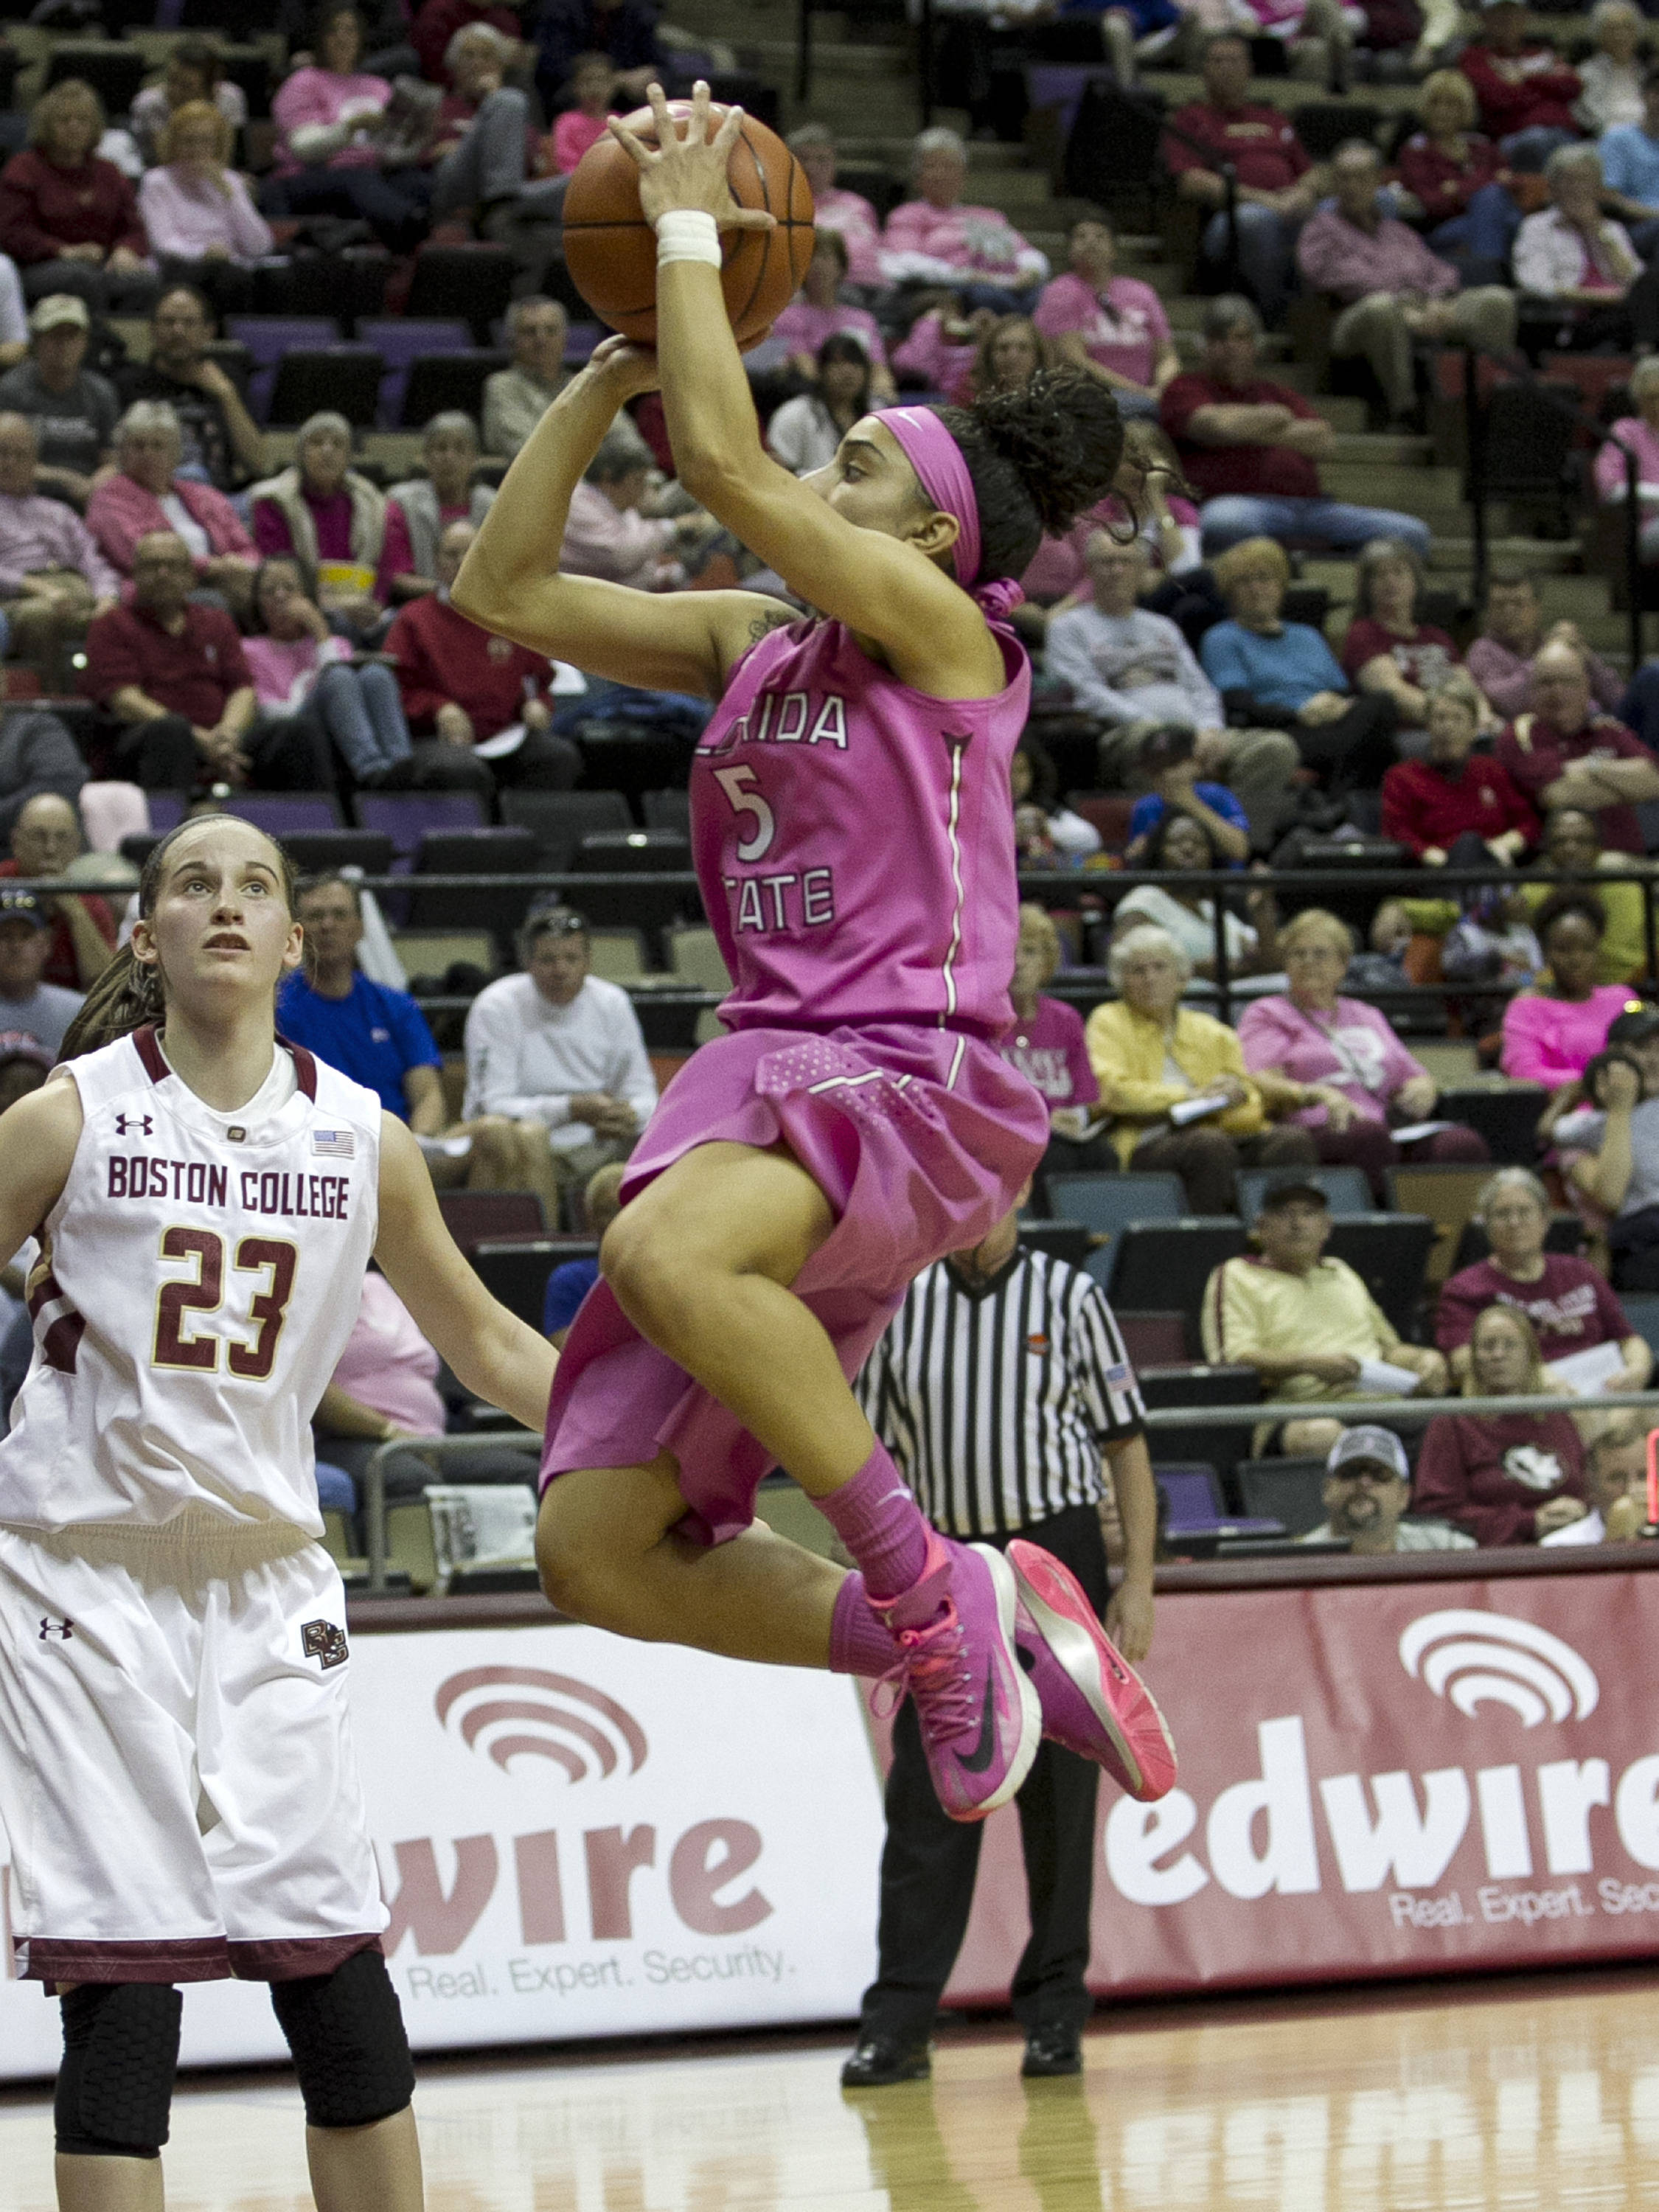 Cheetah Delgado (5) pulls up for a short jumper, FSU vs Boston College, 2-09-14, (Photo's by Steve Musco)